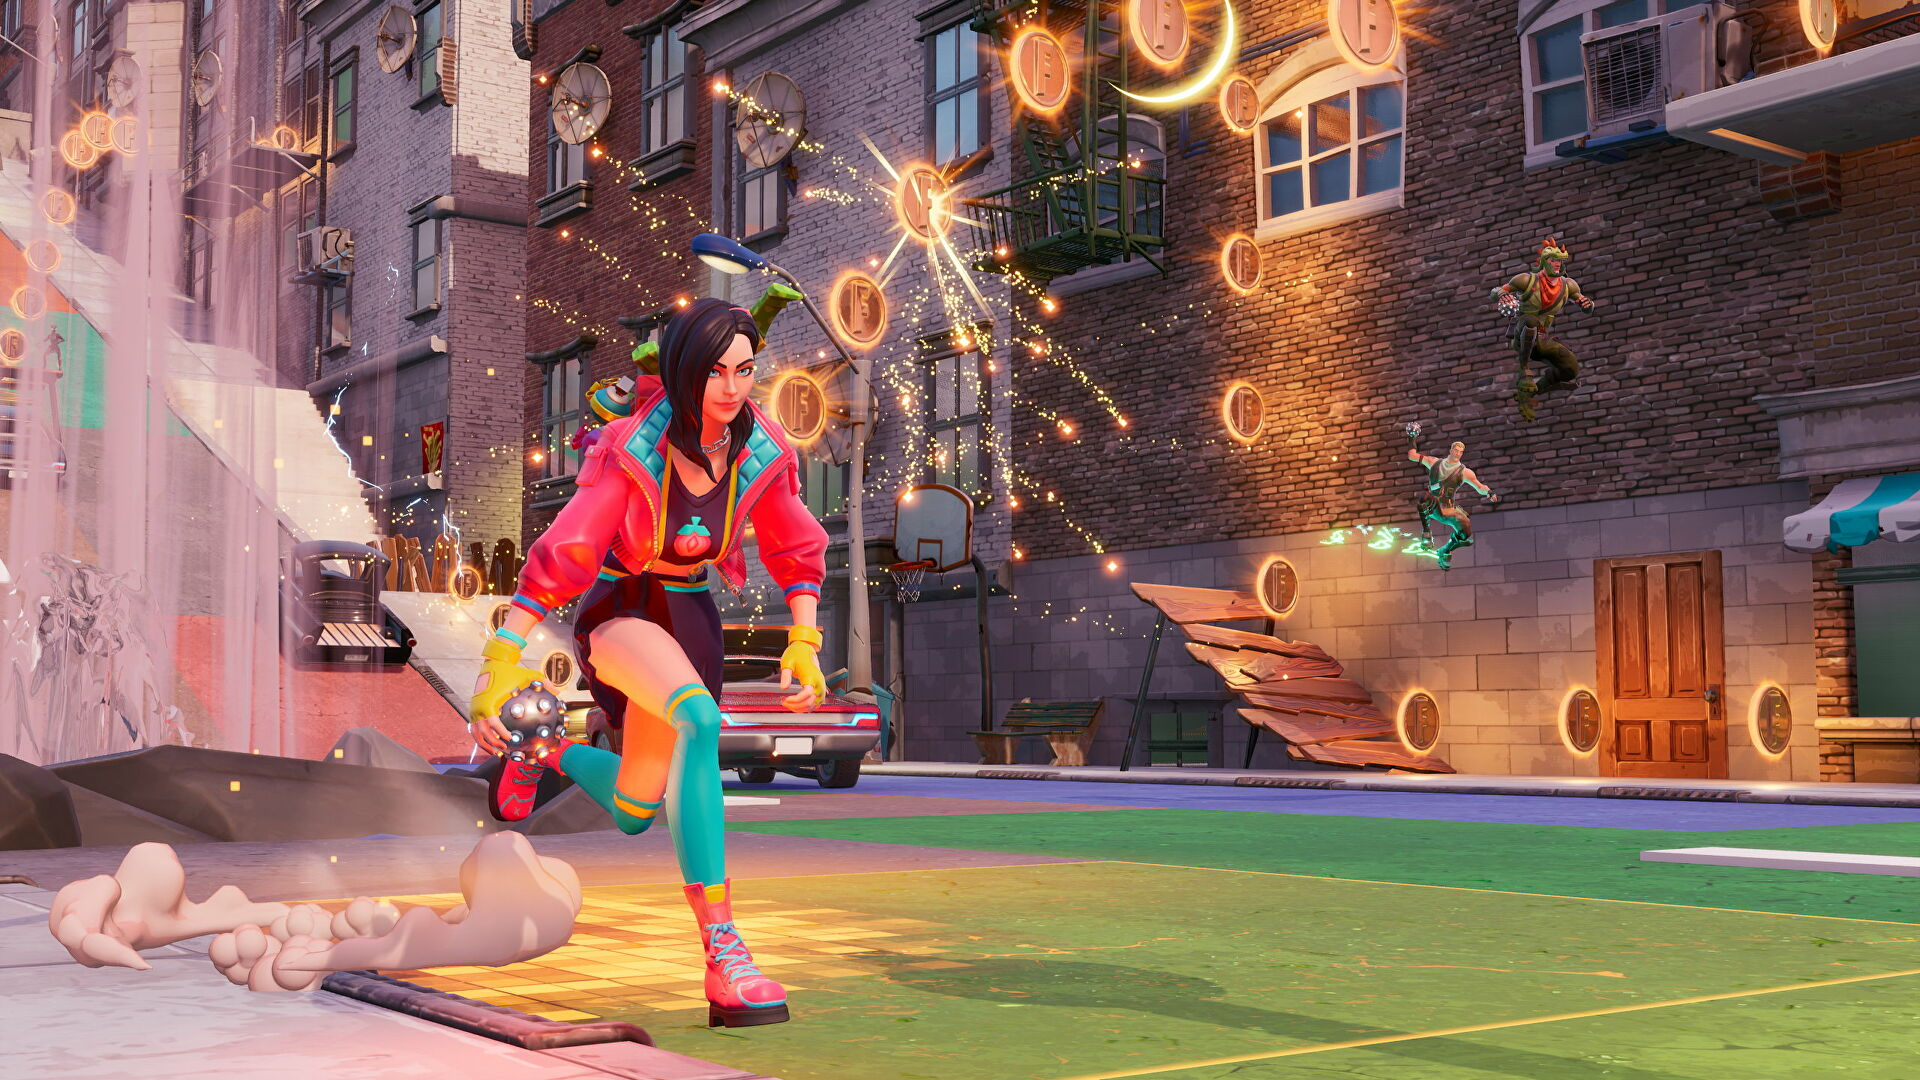 Fortnite made over $9 billion in its first two years | Rock Paper Shotgun